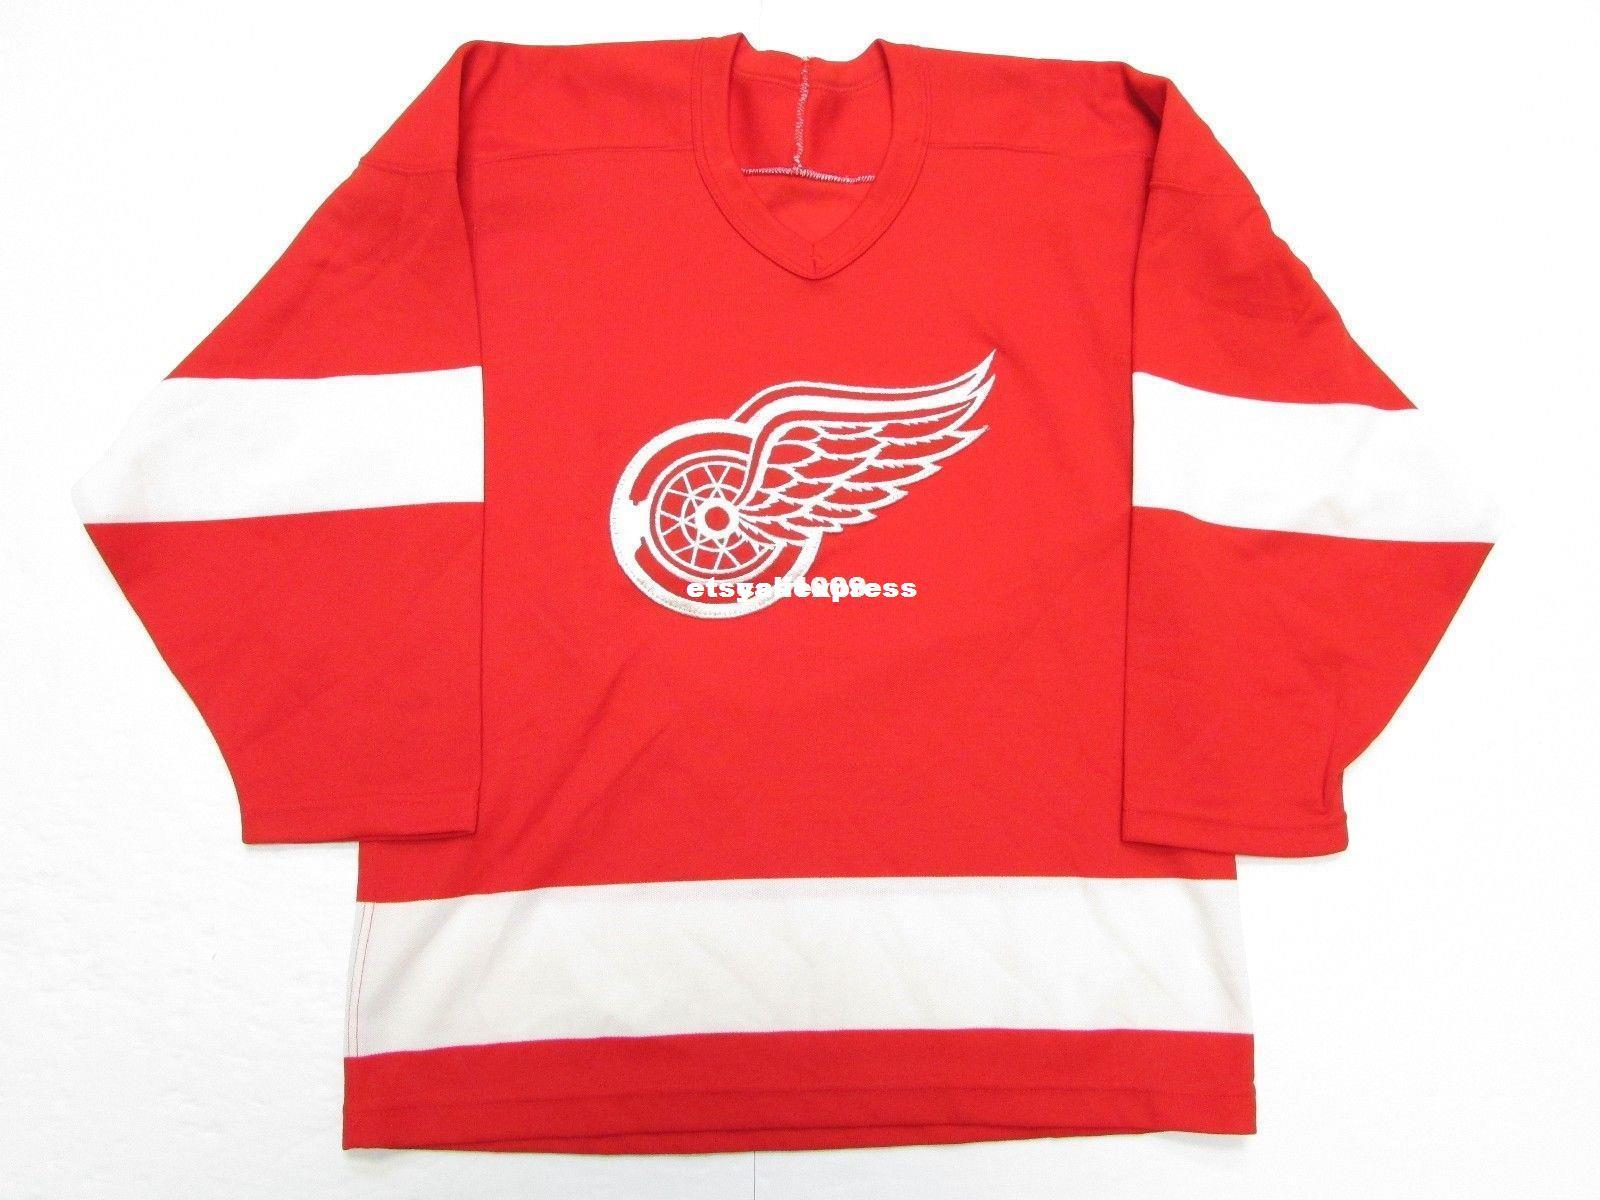 f853320502c 2019 Cheap Custom DETROIT RED WINGS VINTAGE HOCKEY JERSEY Stitch Add Any  Number Any Name Mens Hockey Jersey XS 6XL From Etsyaliexpress, $23.08 |  DHgate.Com